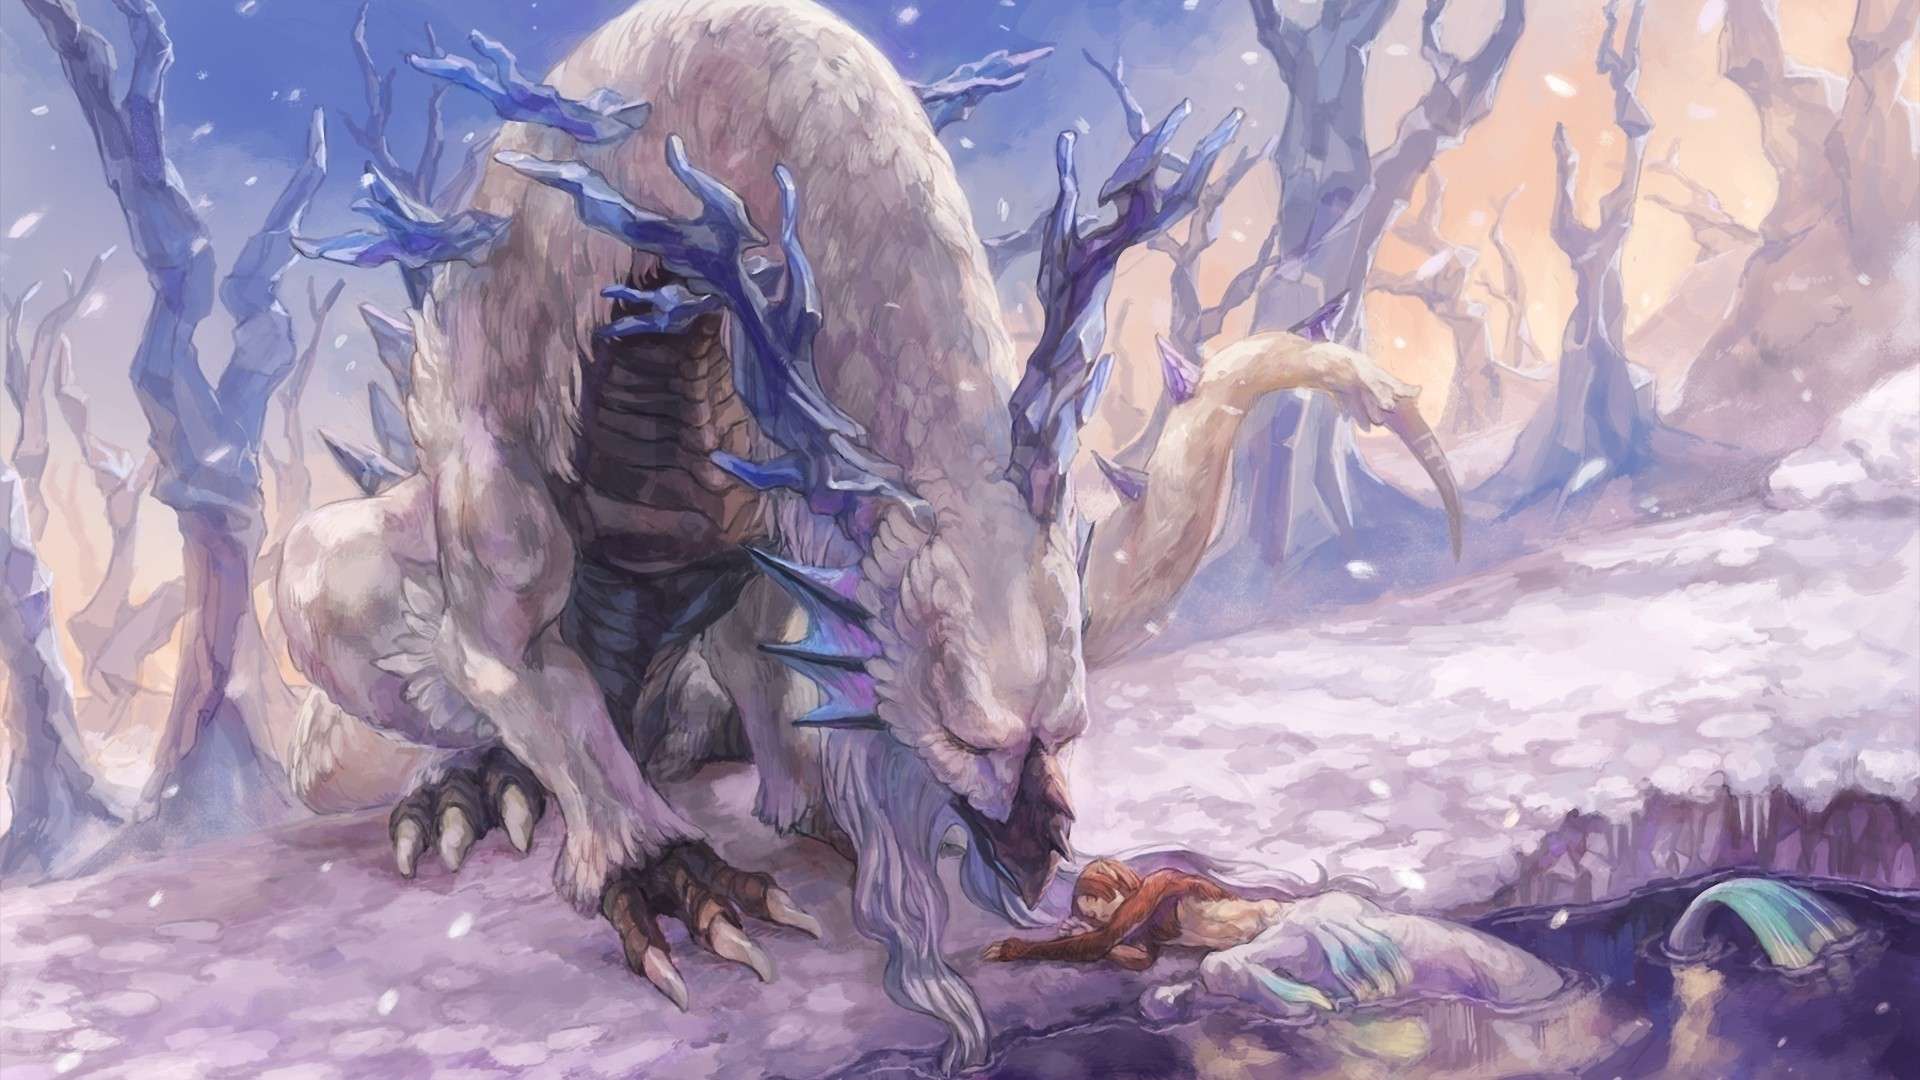 Ice Dragon Wallpaper Ice dragon wallpapers and 1920x1080